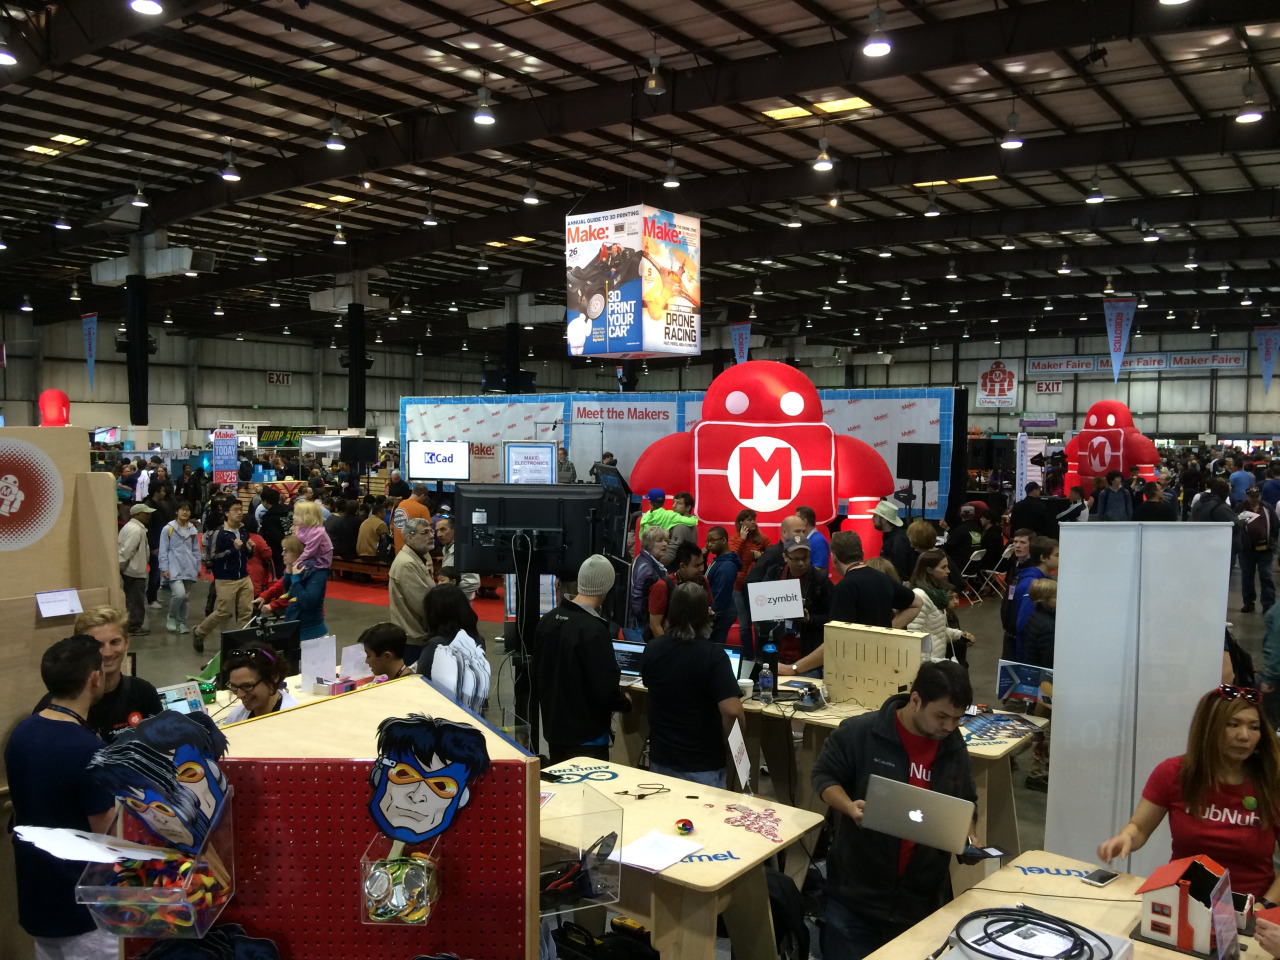 Maker Faire Exhibition Hall